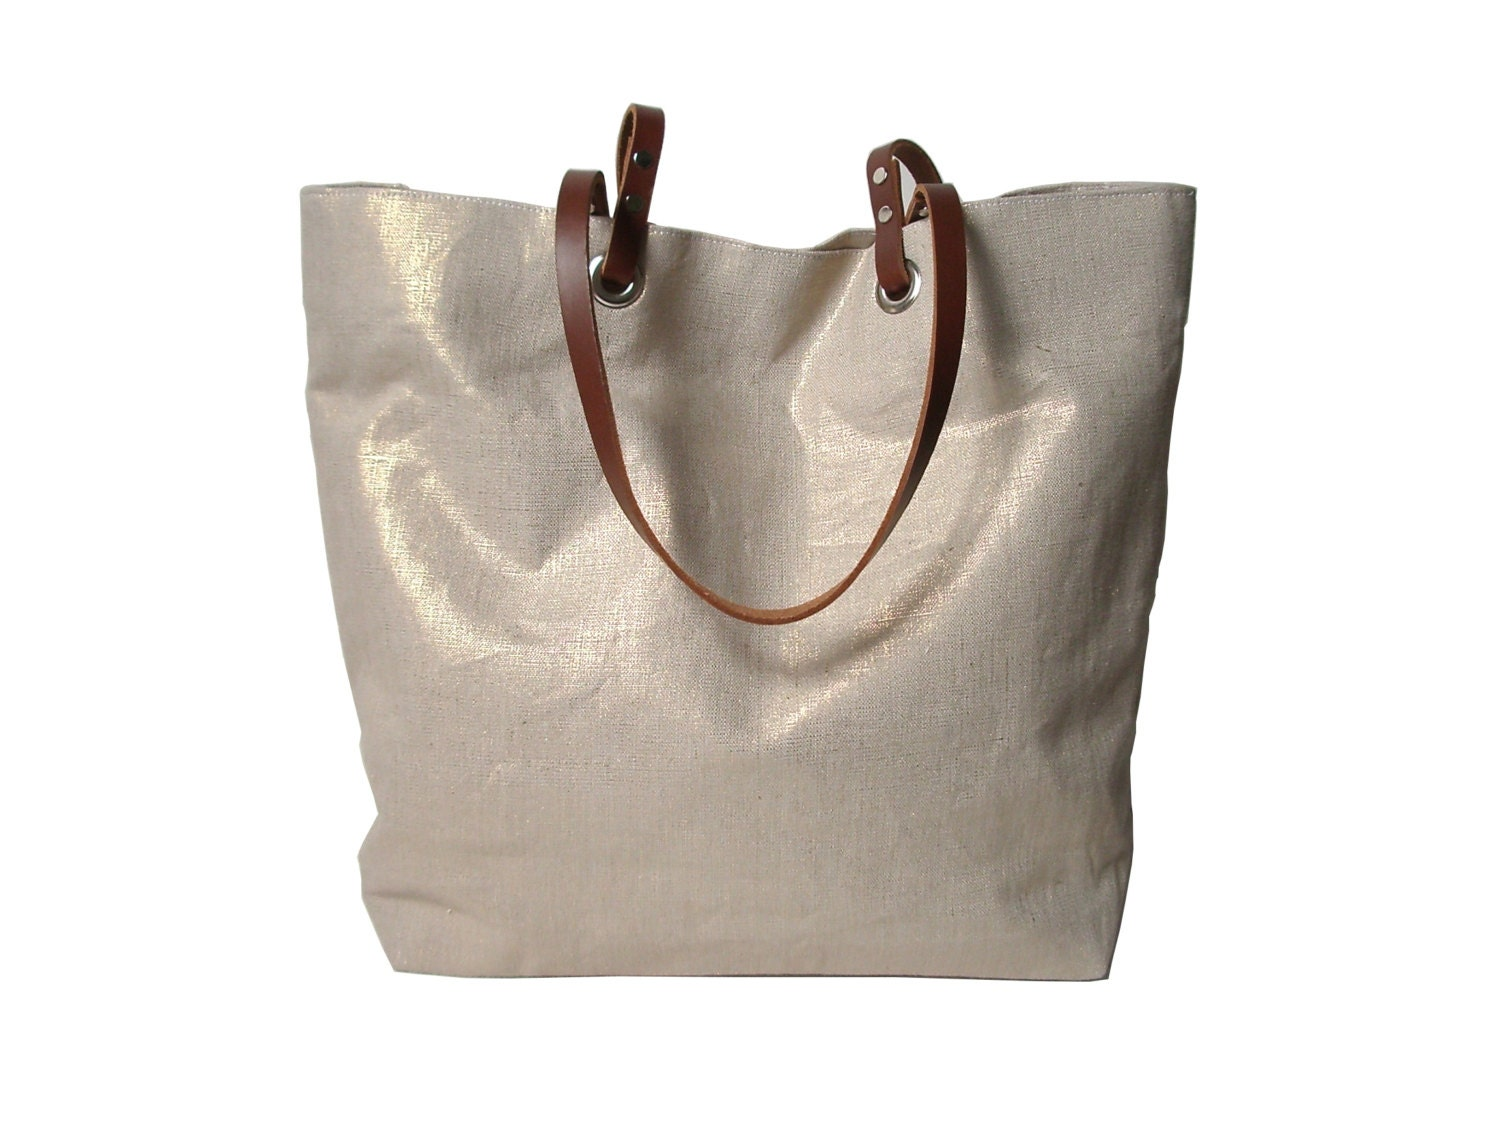 Metallic tote bags uk – New trendy bags models photo blog